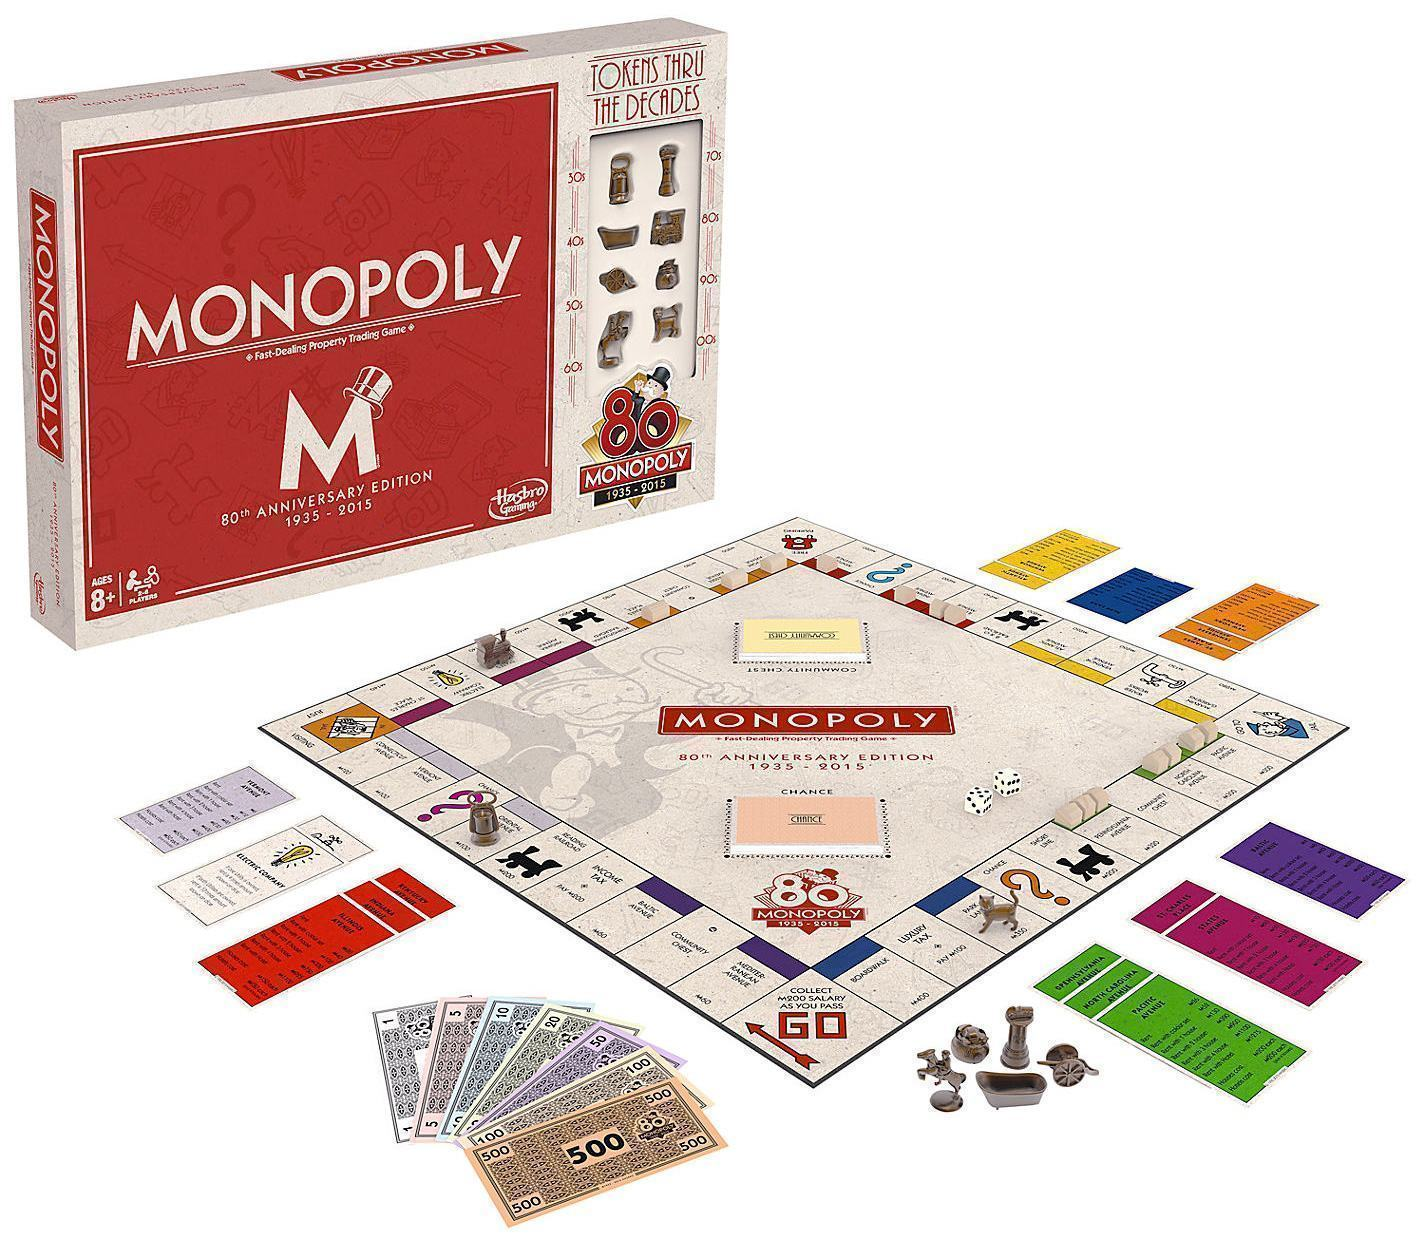 Monopoly-80th-Anniversary-Edition-Game-05